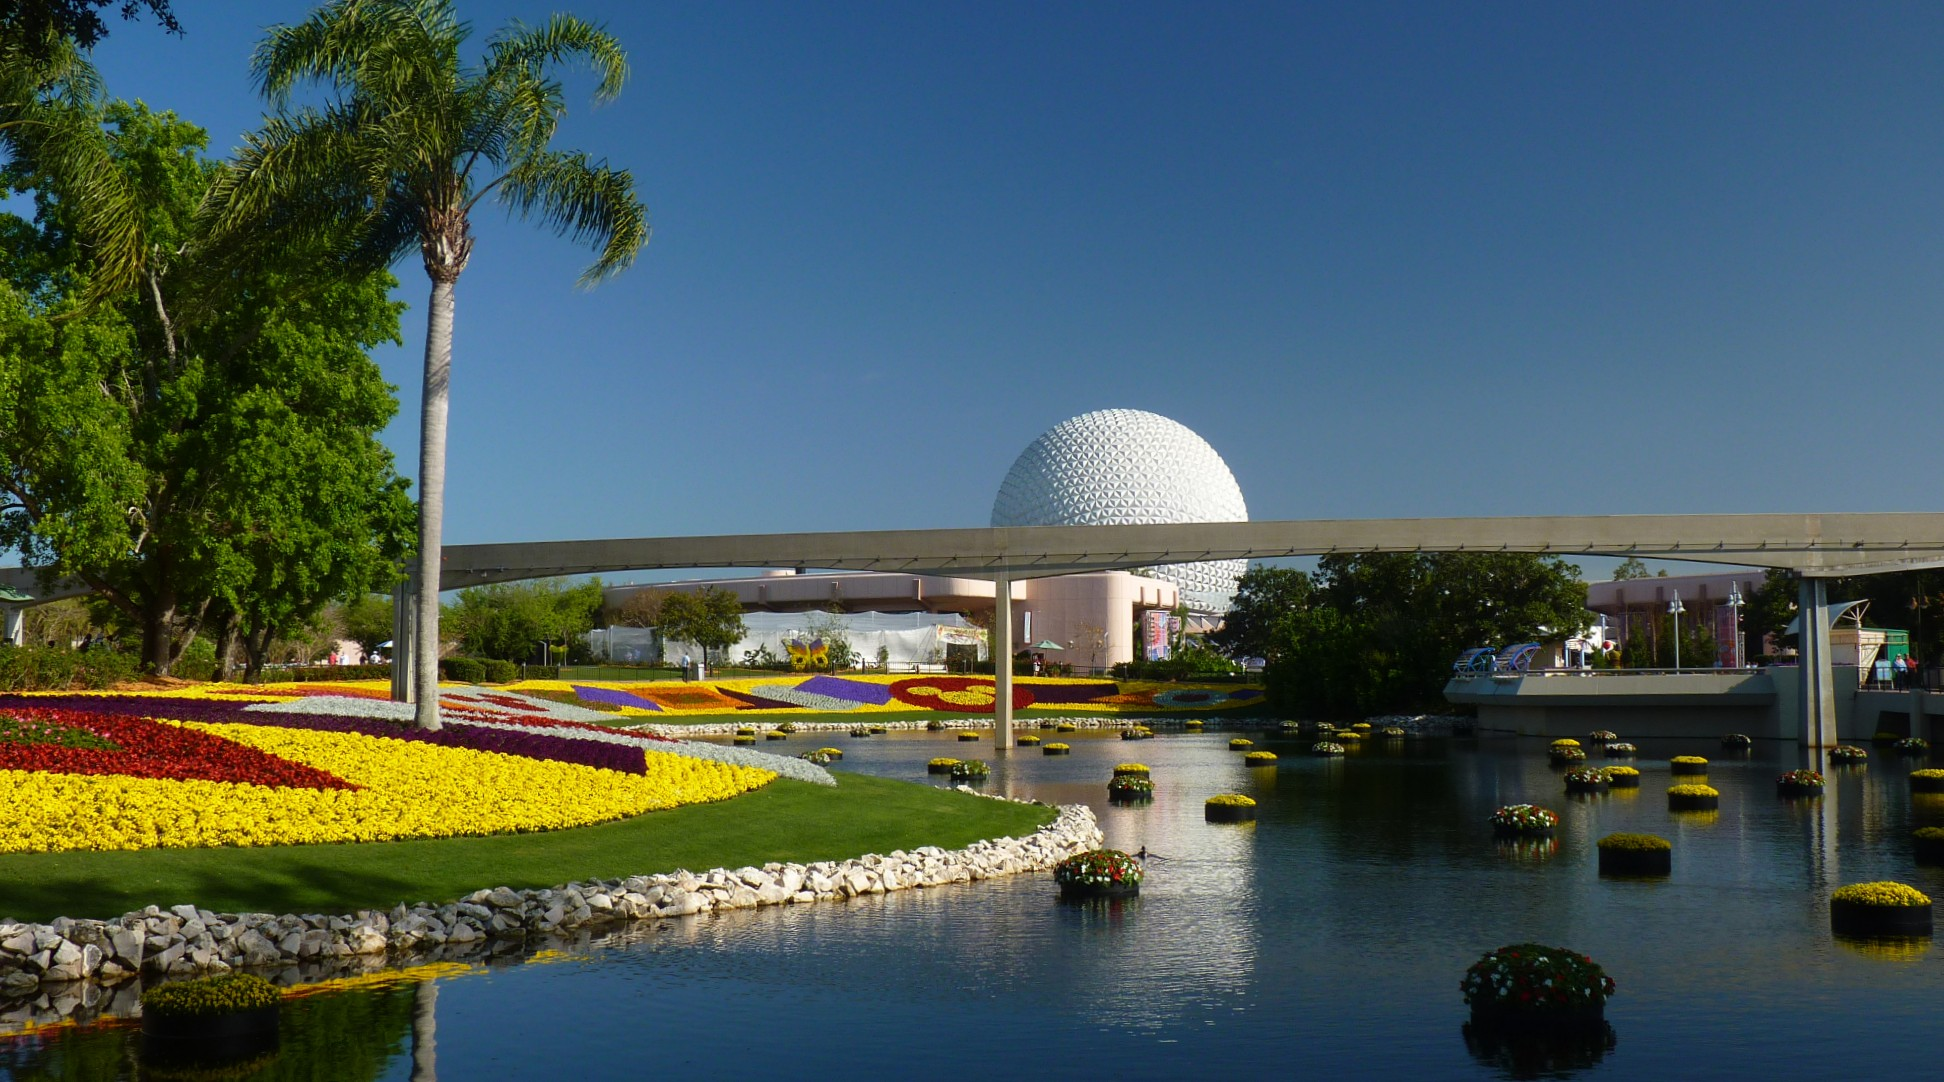 Jud's Disney Picture of the Day: BIG BALL, ONE PALM